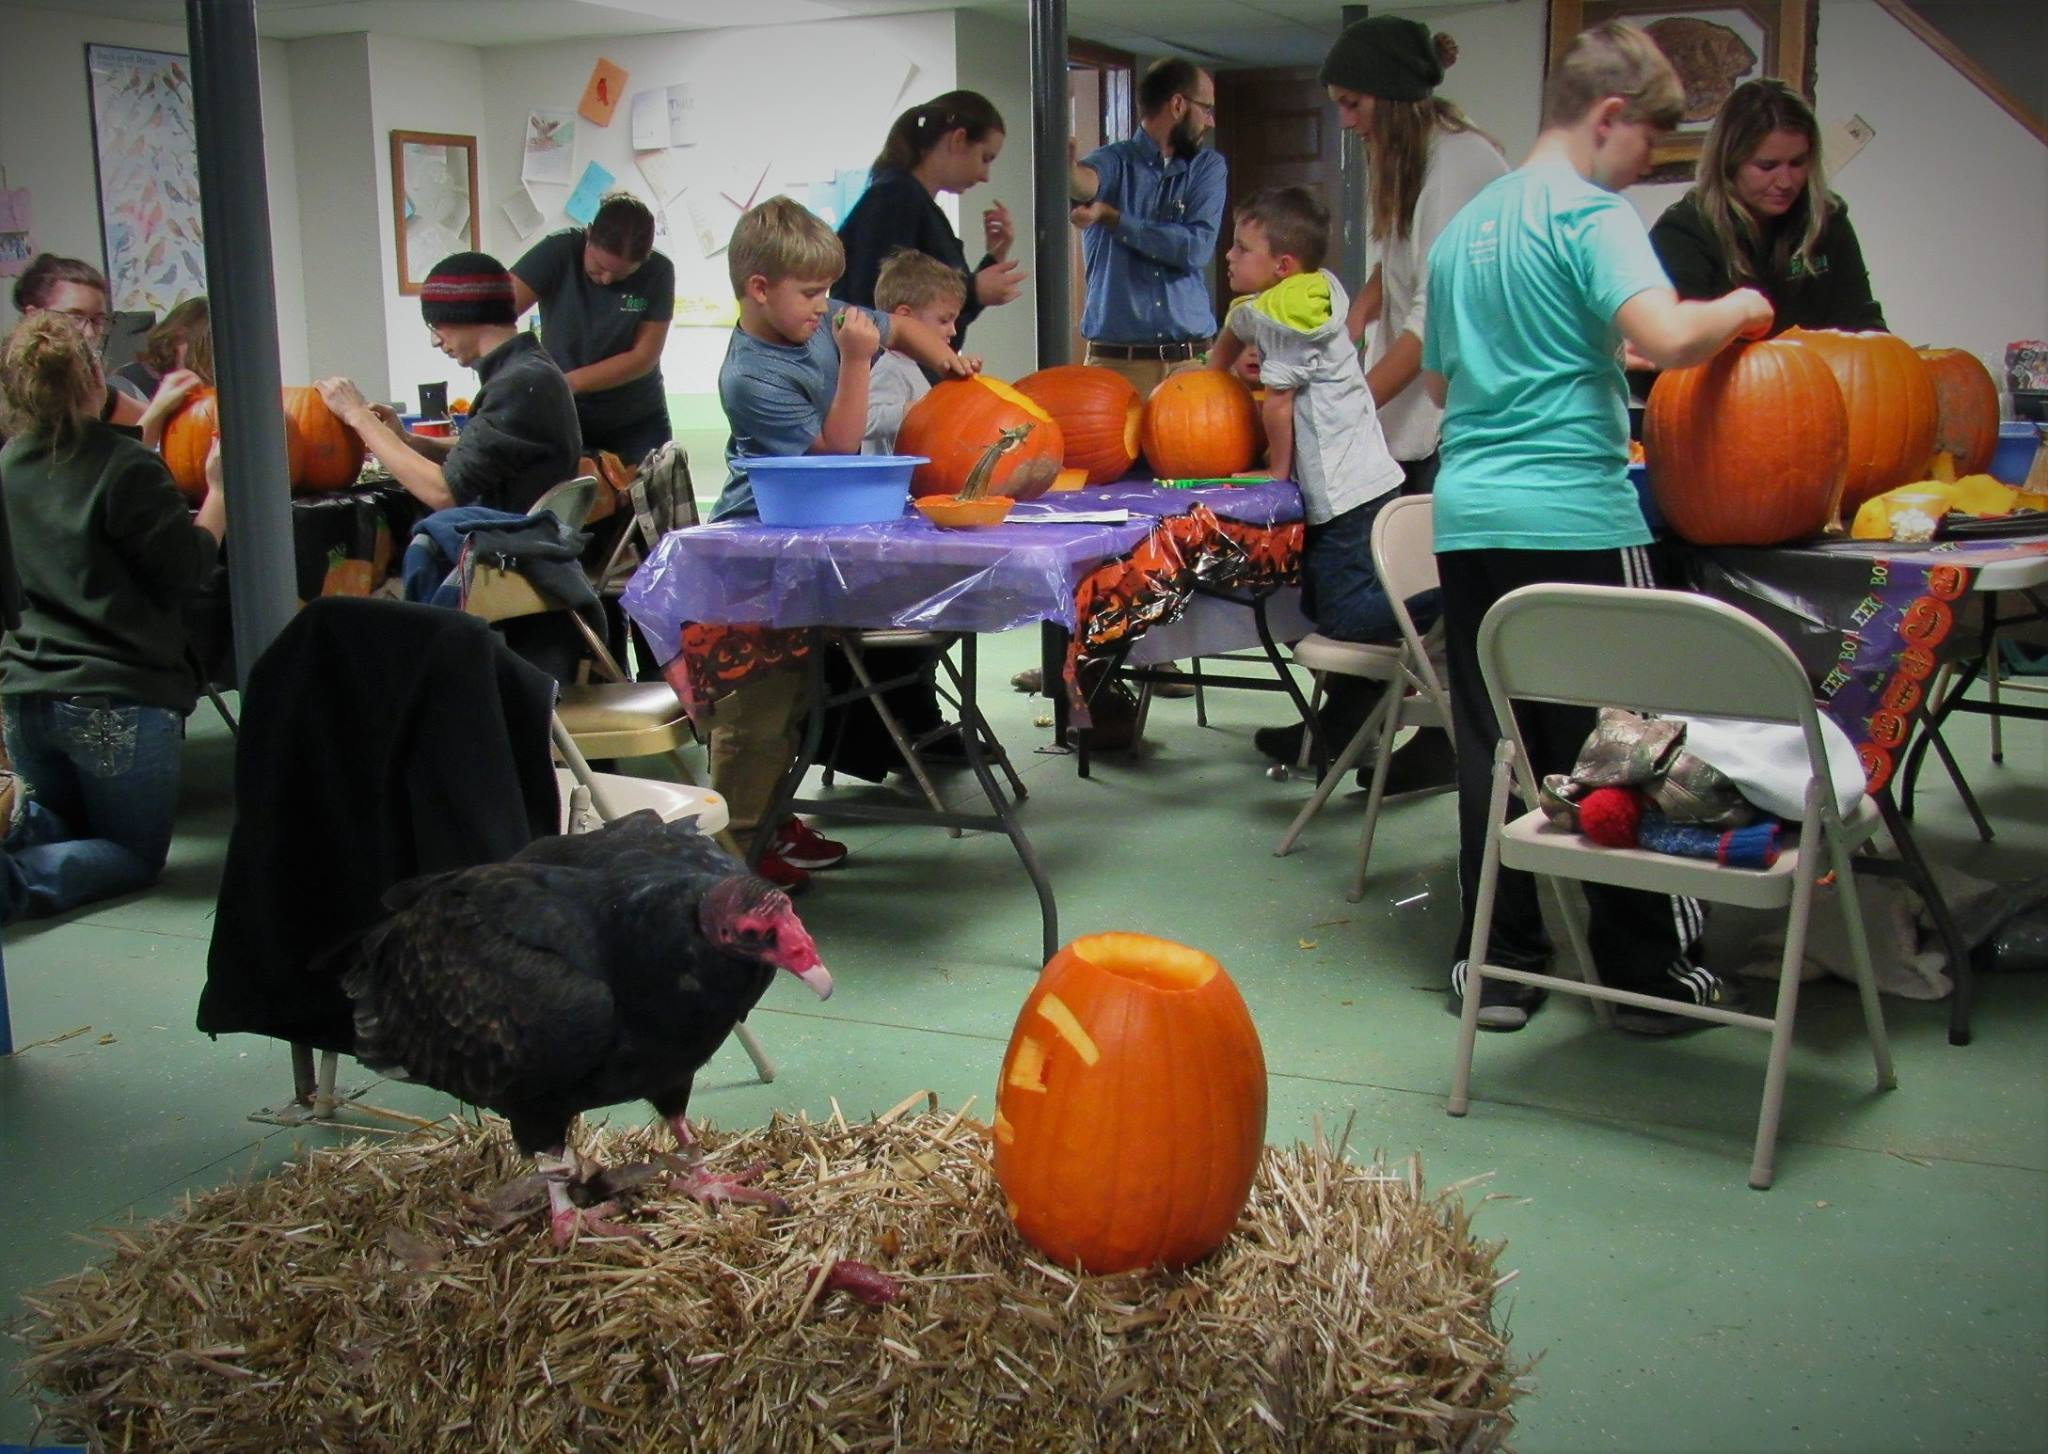 Morrie the Turkey vulture kept on eye on everyone during the event while enjoying his own pumpkin!